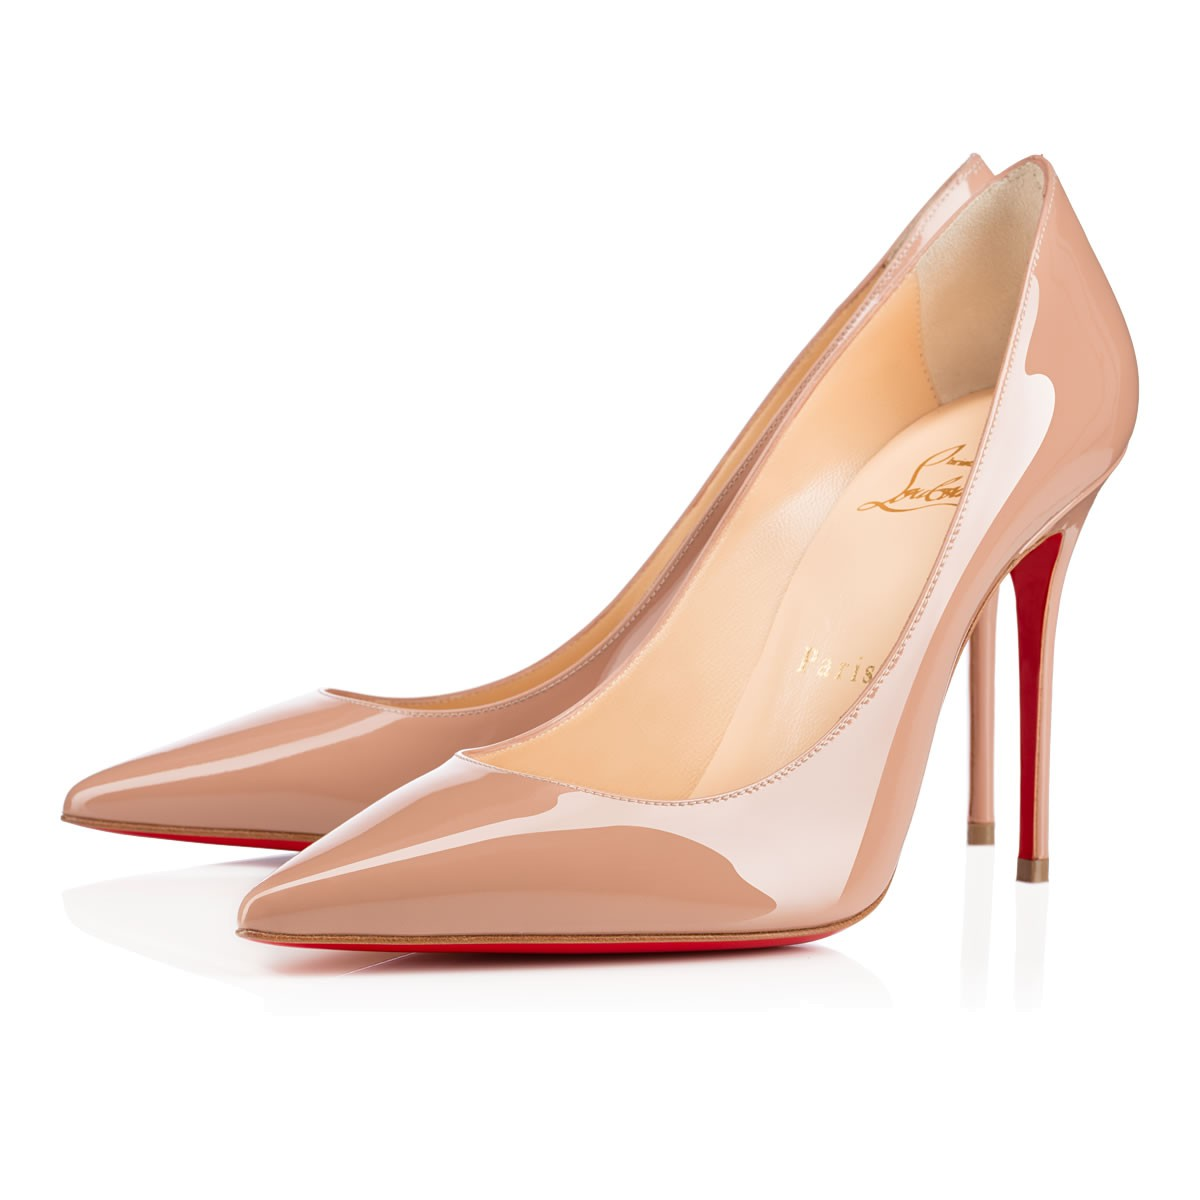 97d141196fbb Kate 100 Nude Patent Leather - Women Shoes - Christian Louboutin